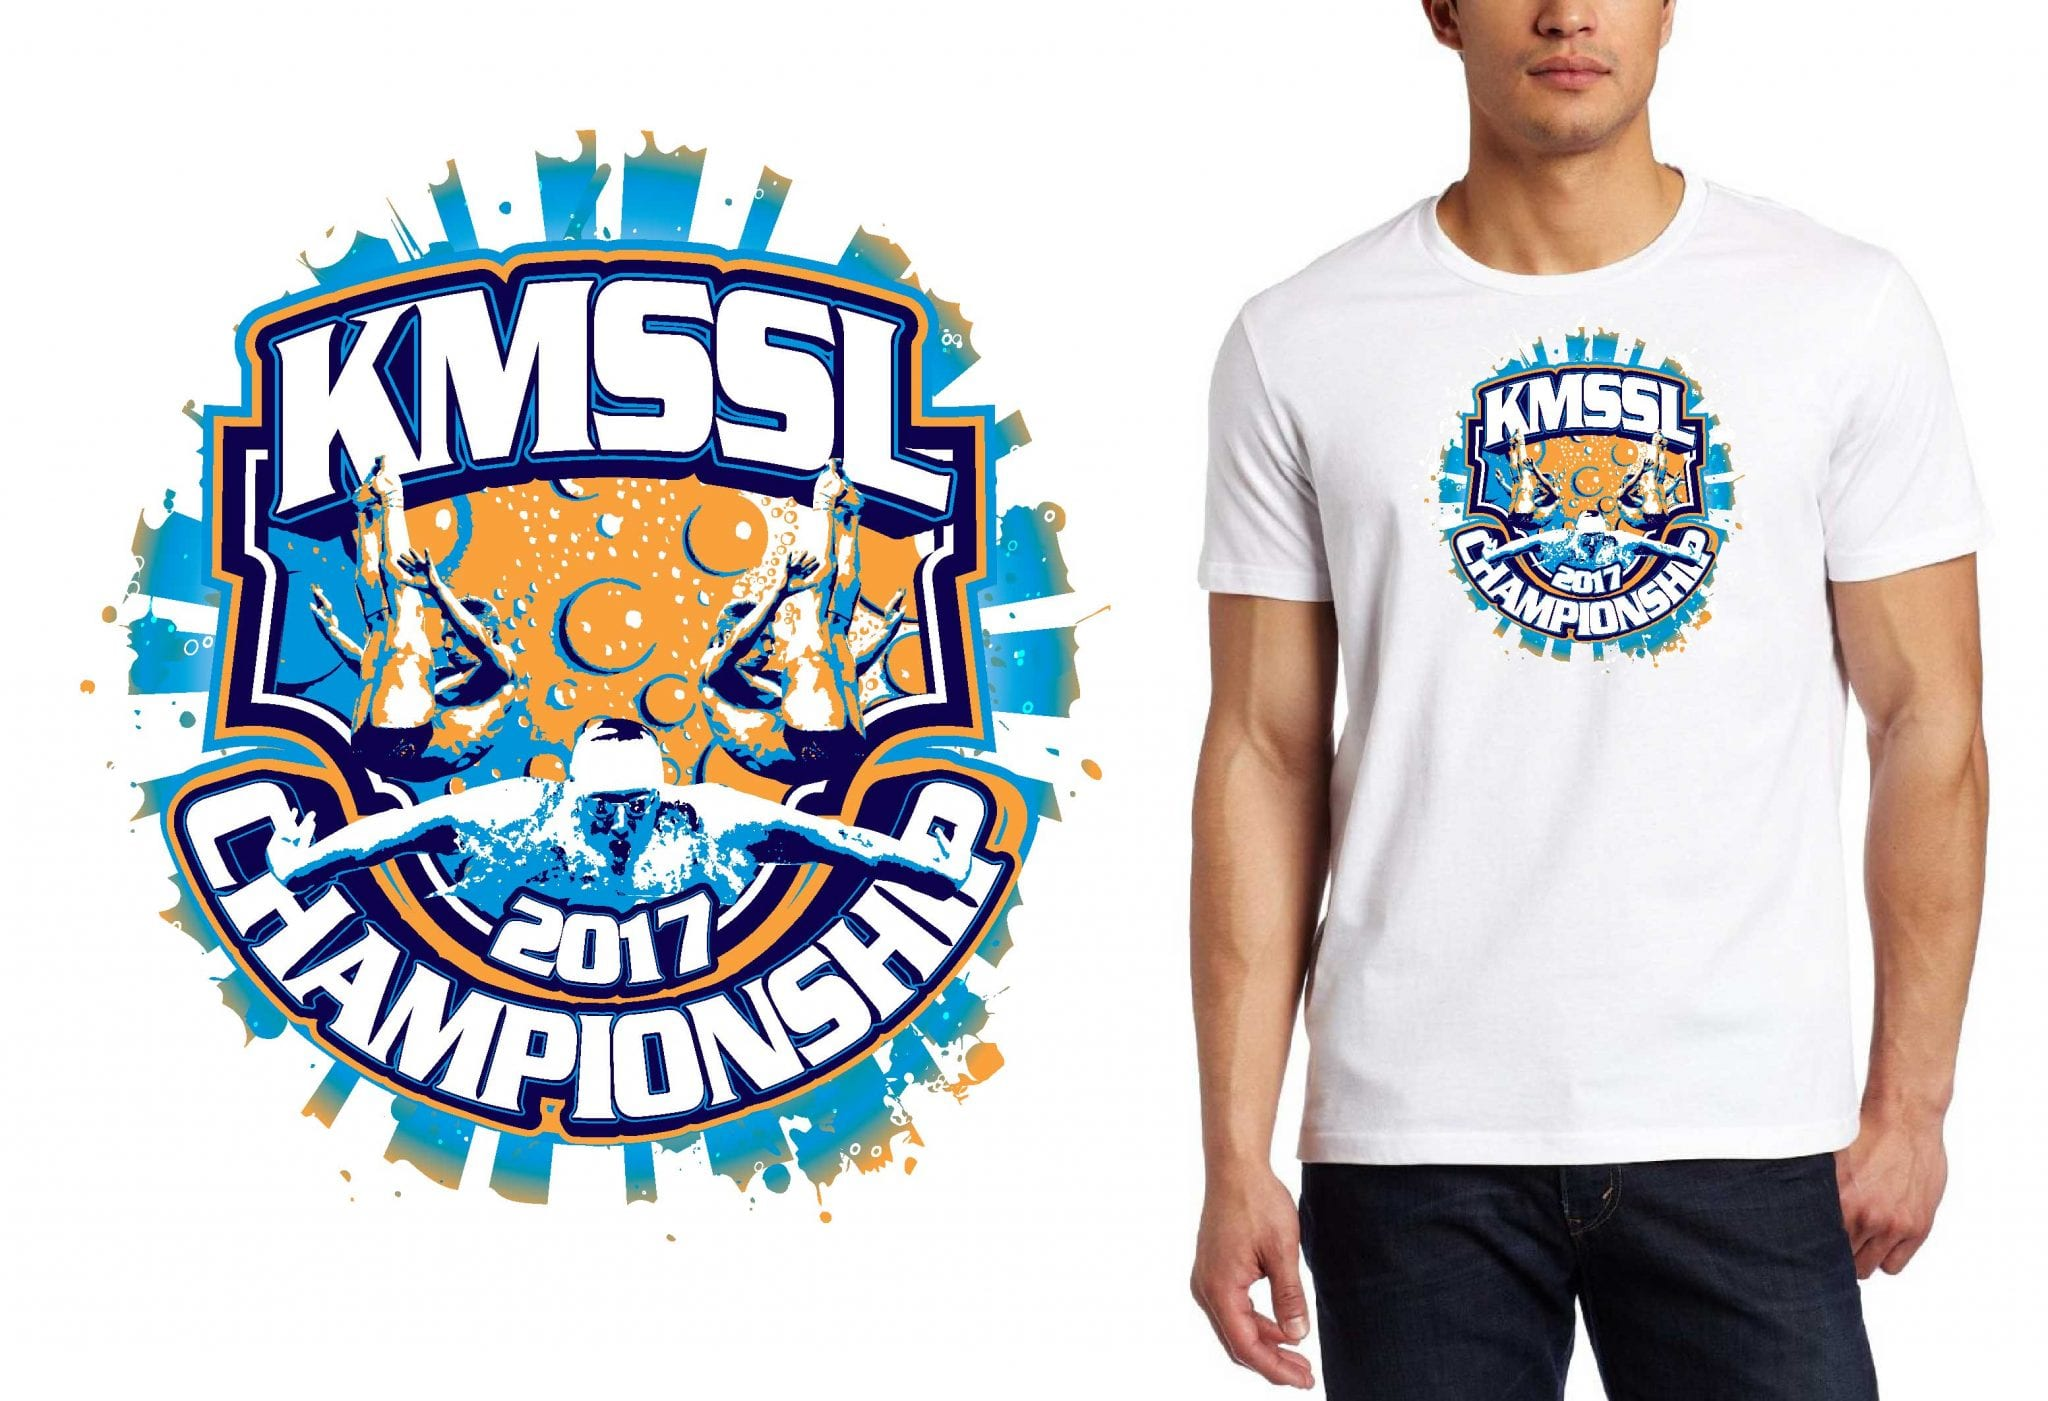 PRINT 1 29 2017 KMSSL Championships tshirt vector logo design for swimming